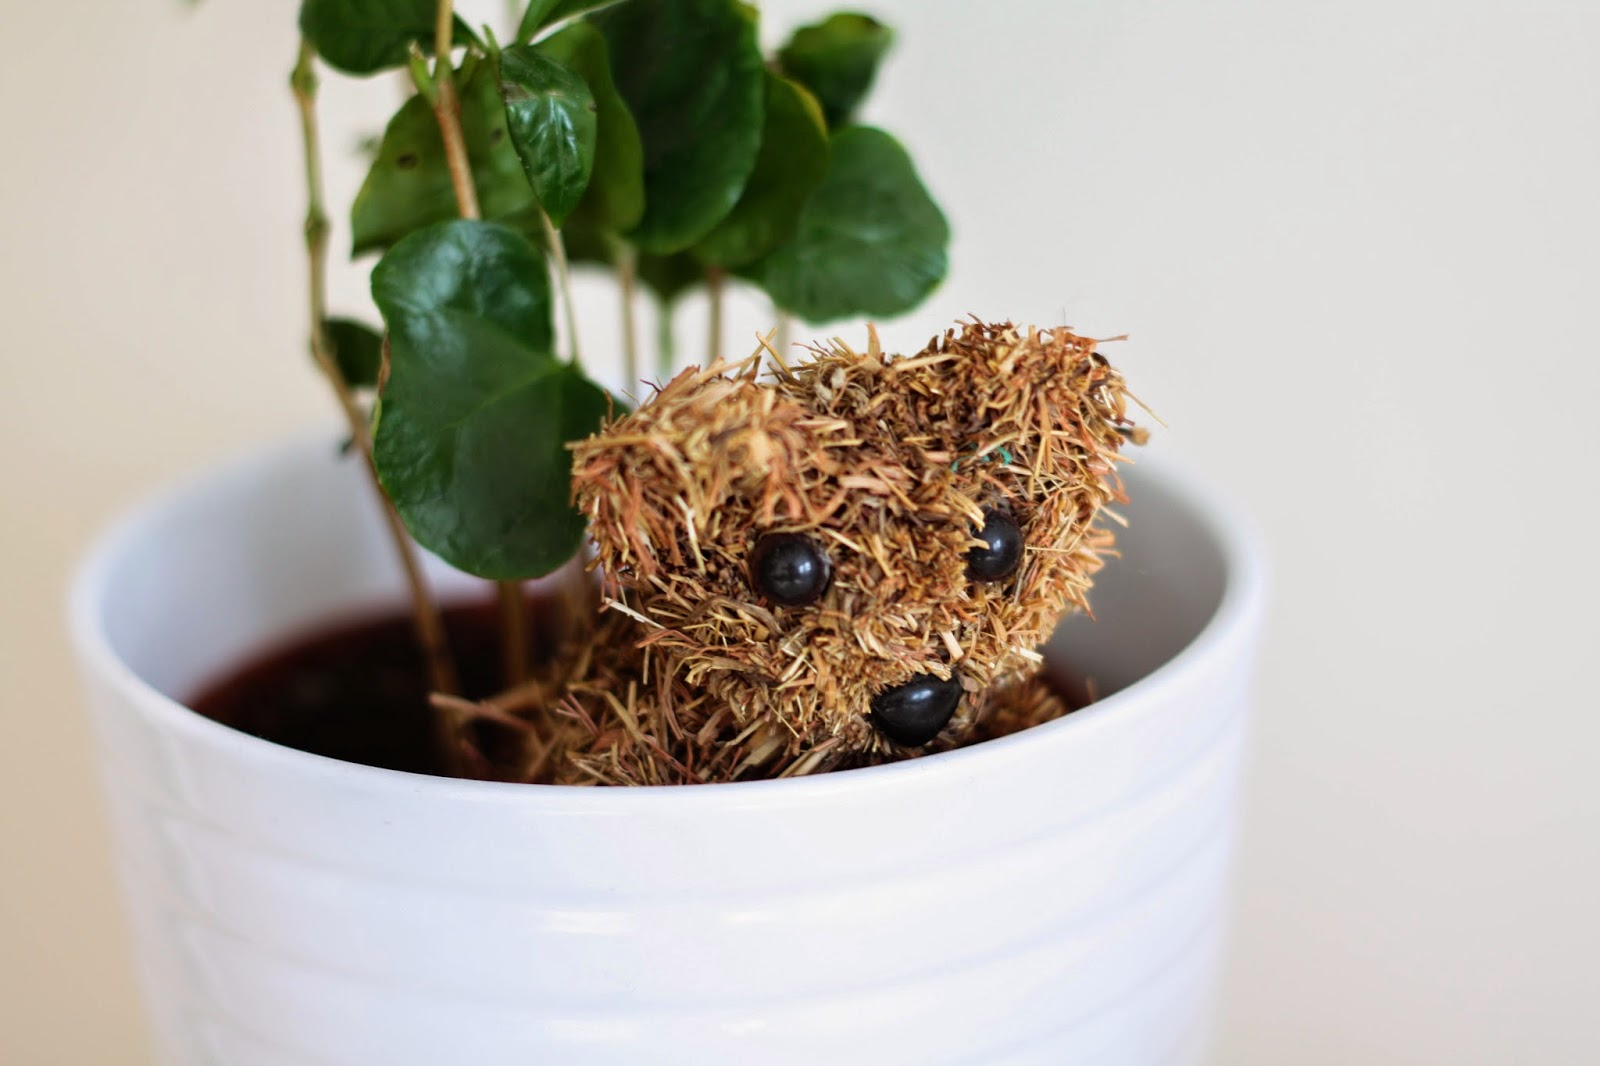 Straw teddy bear in a plant pot